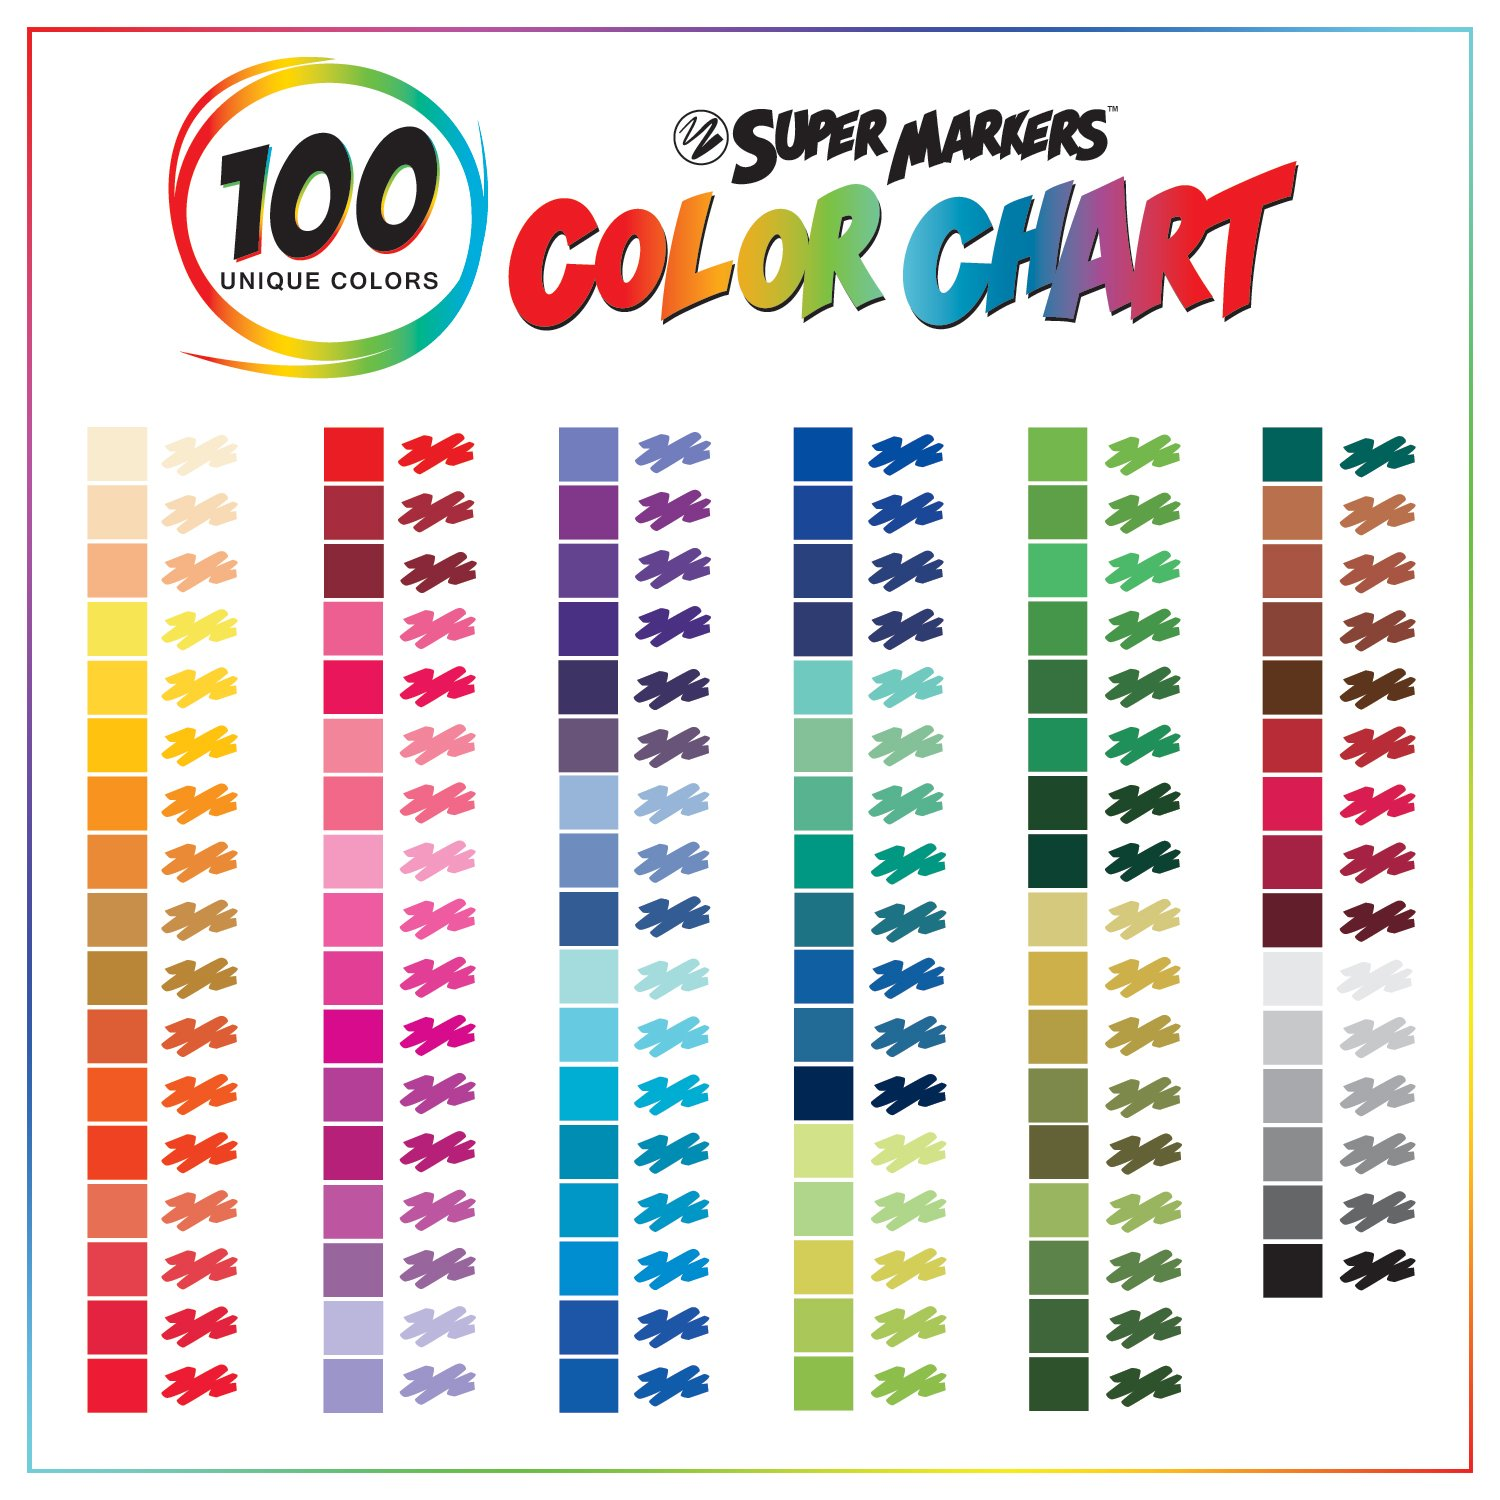 100/% Satisfaction Guarantee Bold Vibrant Colors Super Markers Set with 100 Unique Marker Colors Includes a Marker Storage Rack Universal Bullet Point Tips for Fine and Bullet Lines